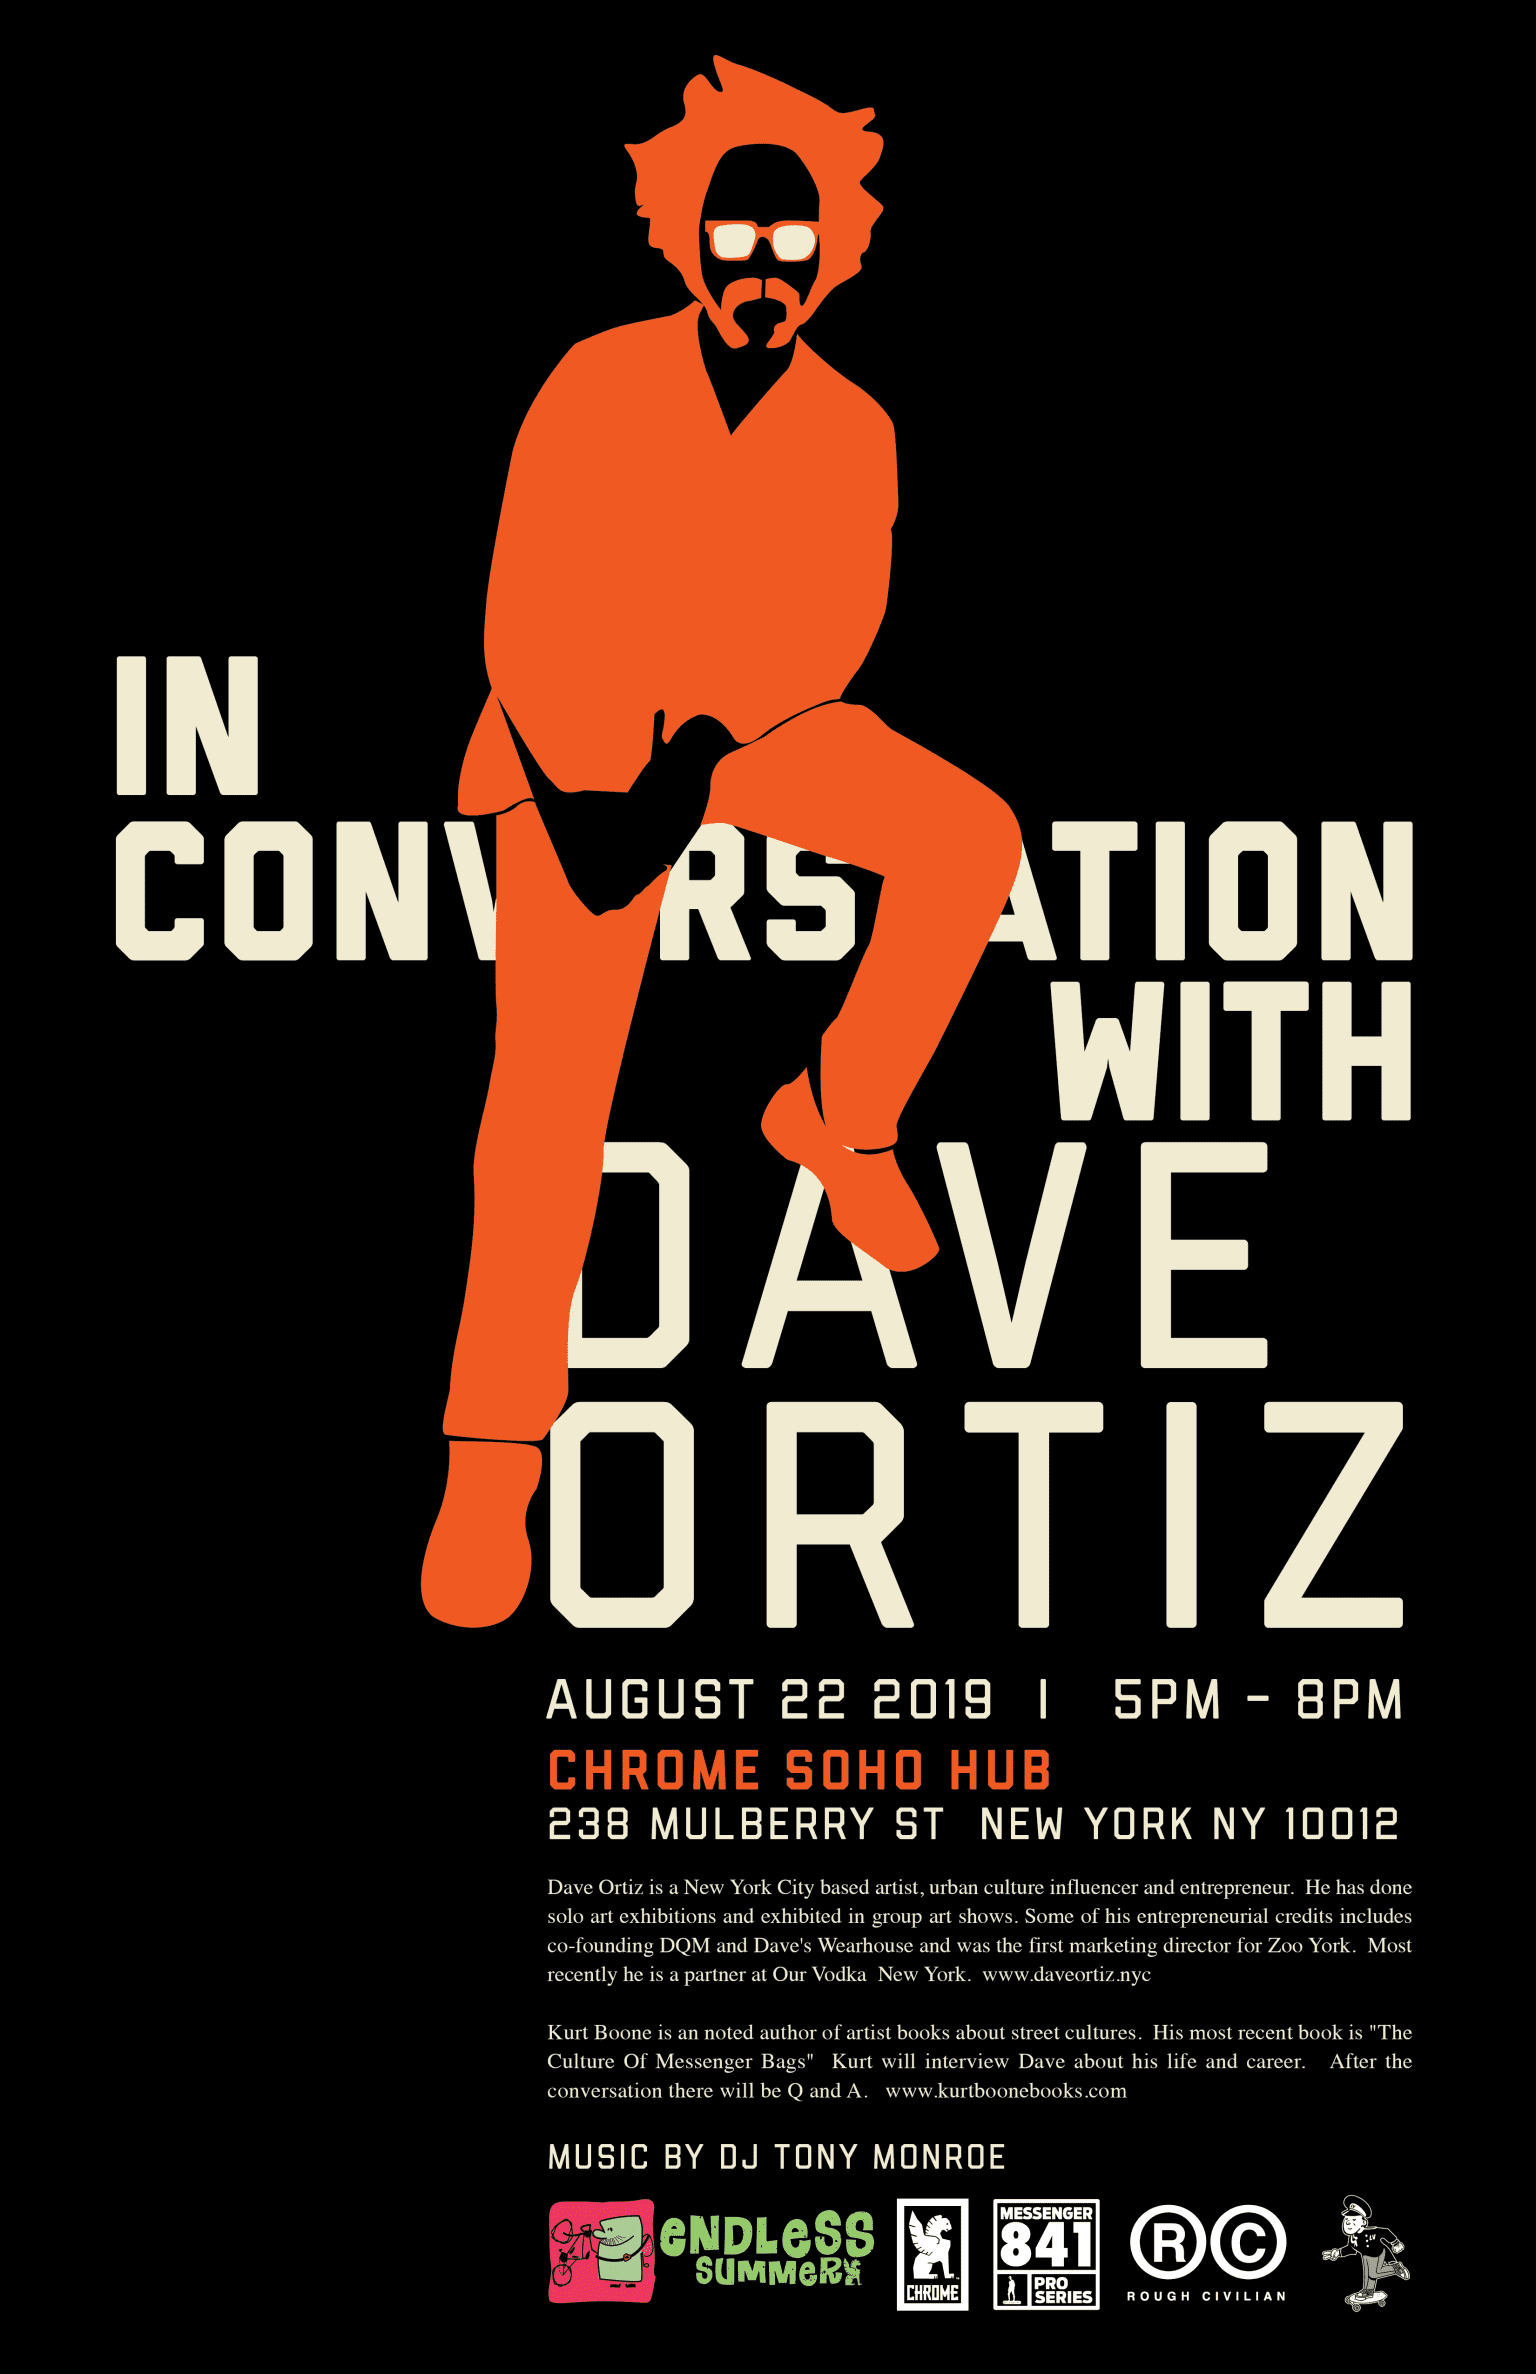 In Conversation with Dave Ortiz